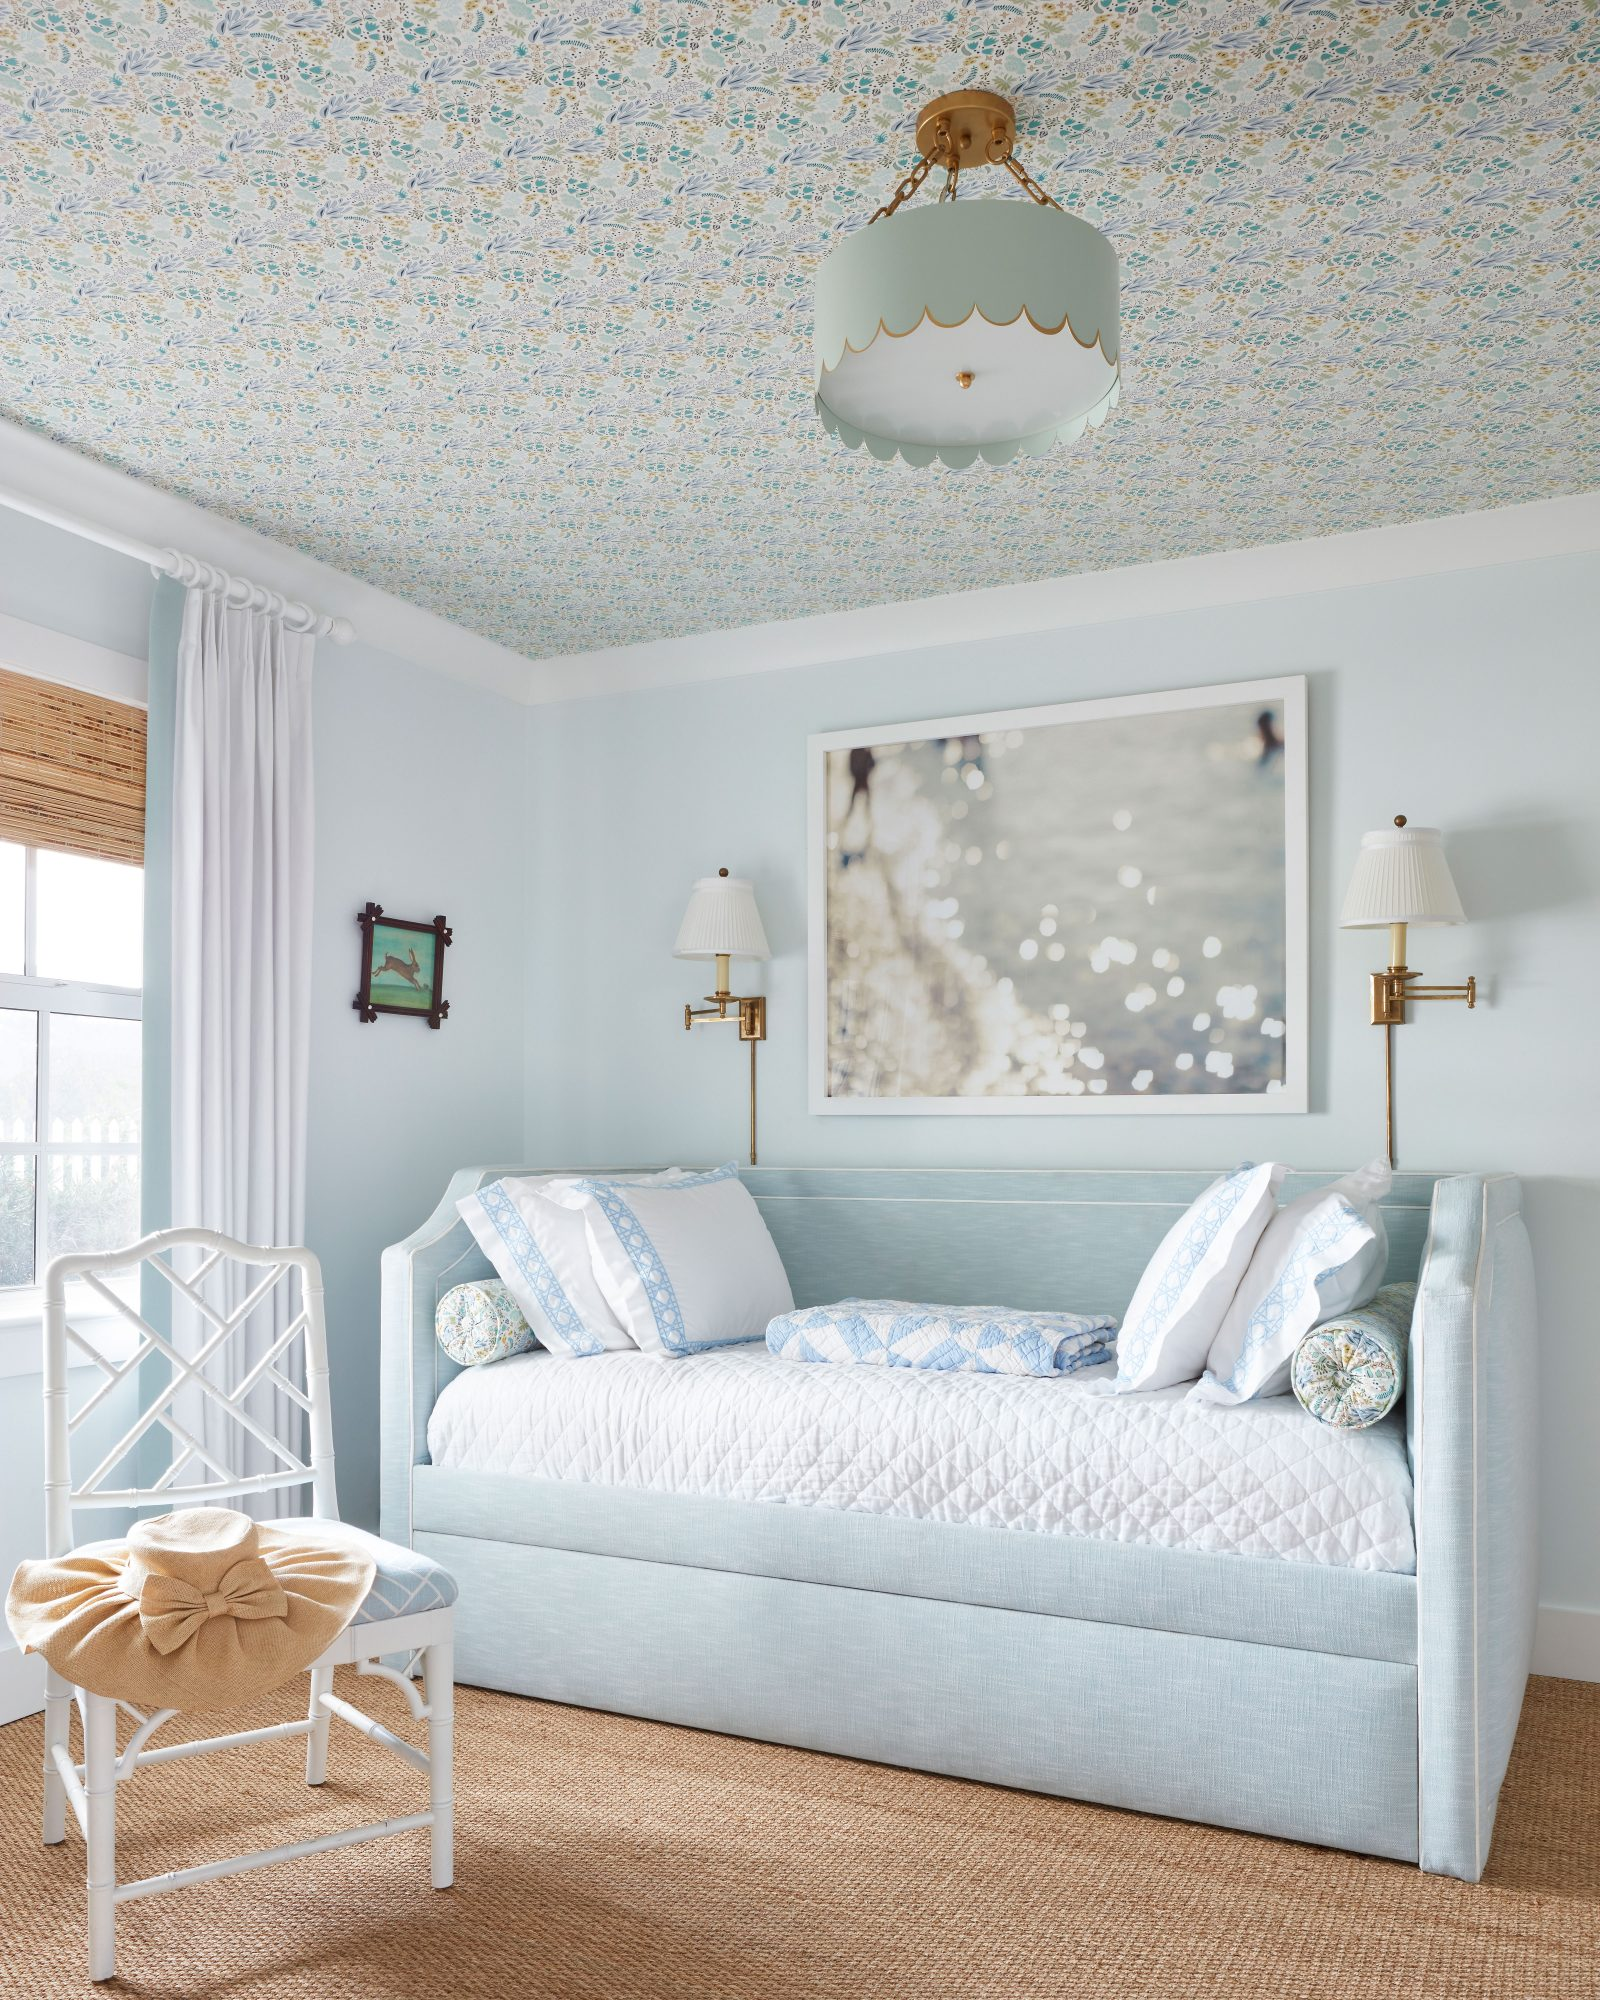 Kid Bedroom with Trundle Bed